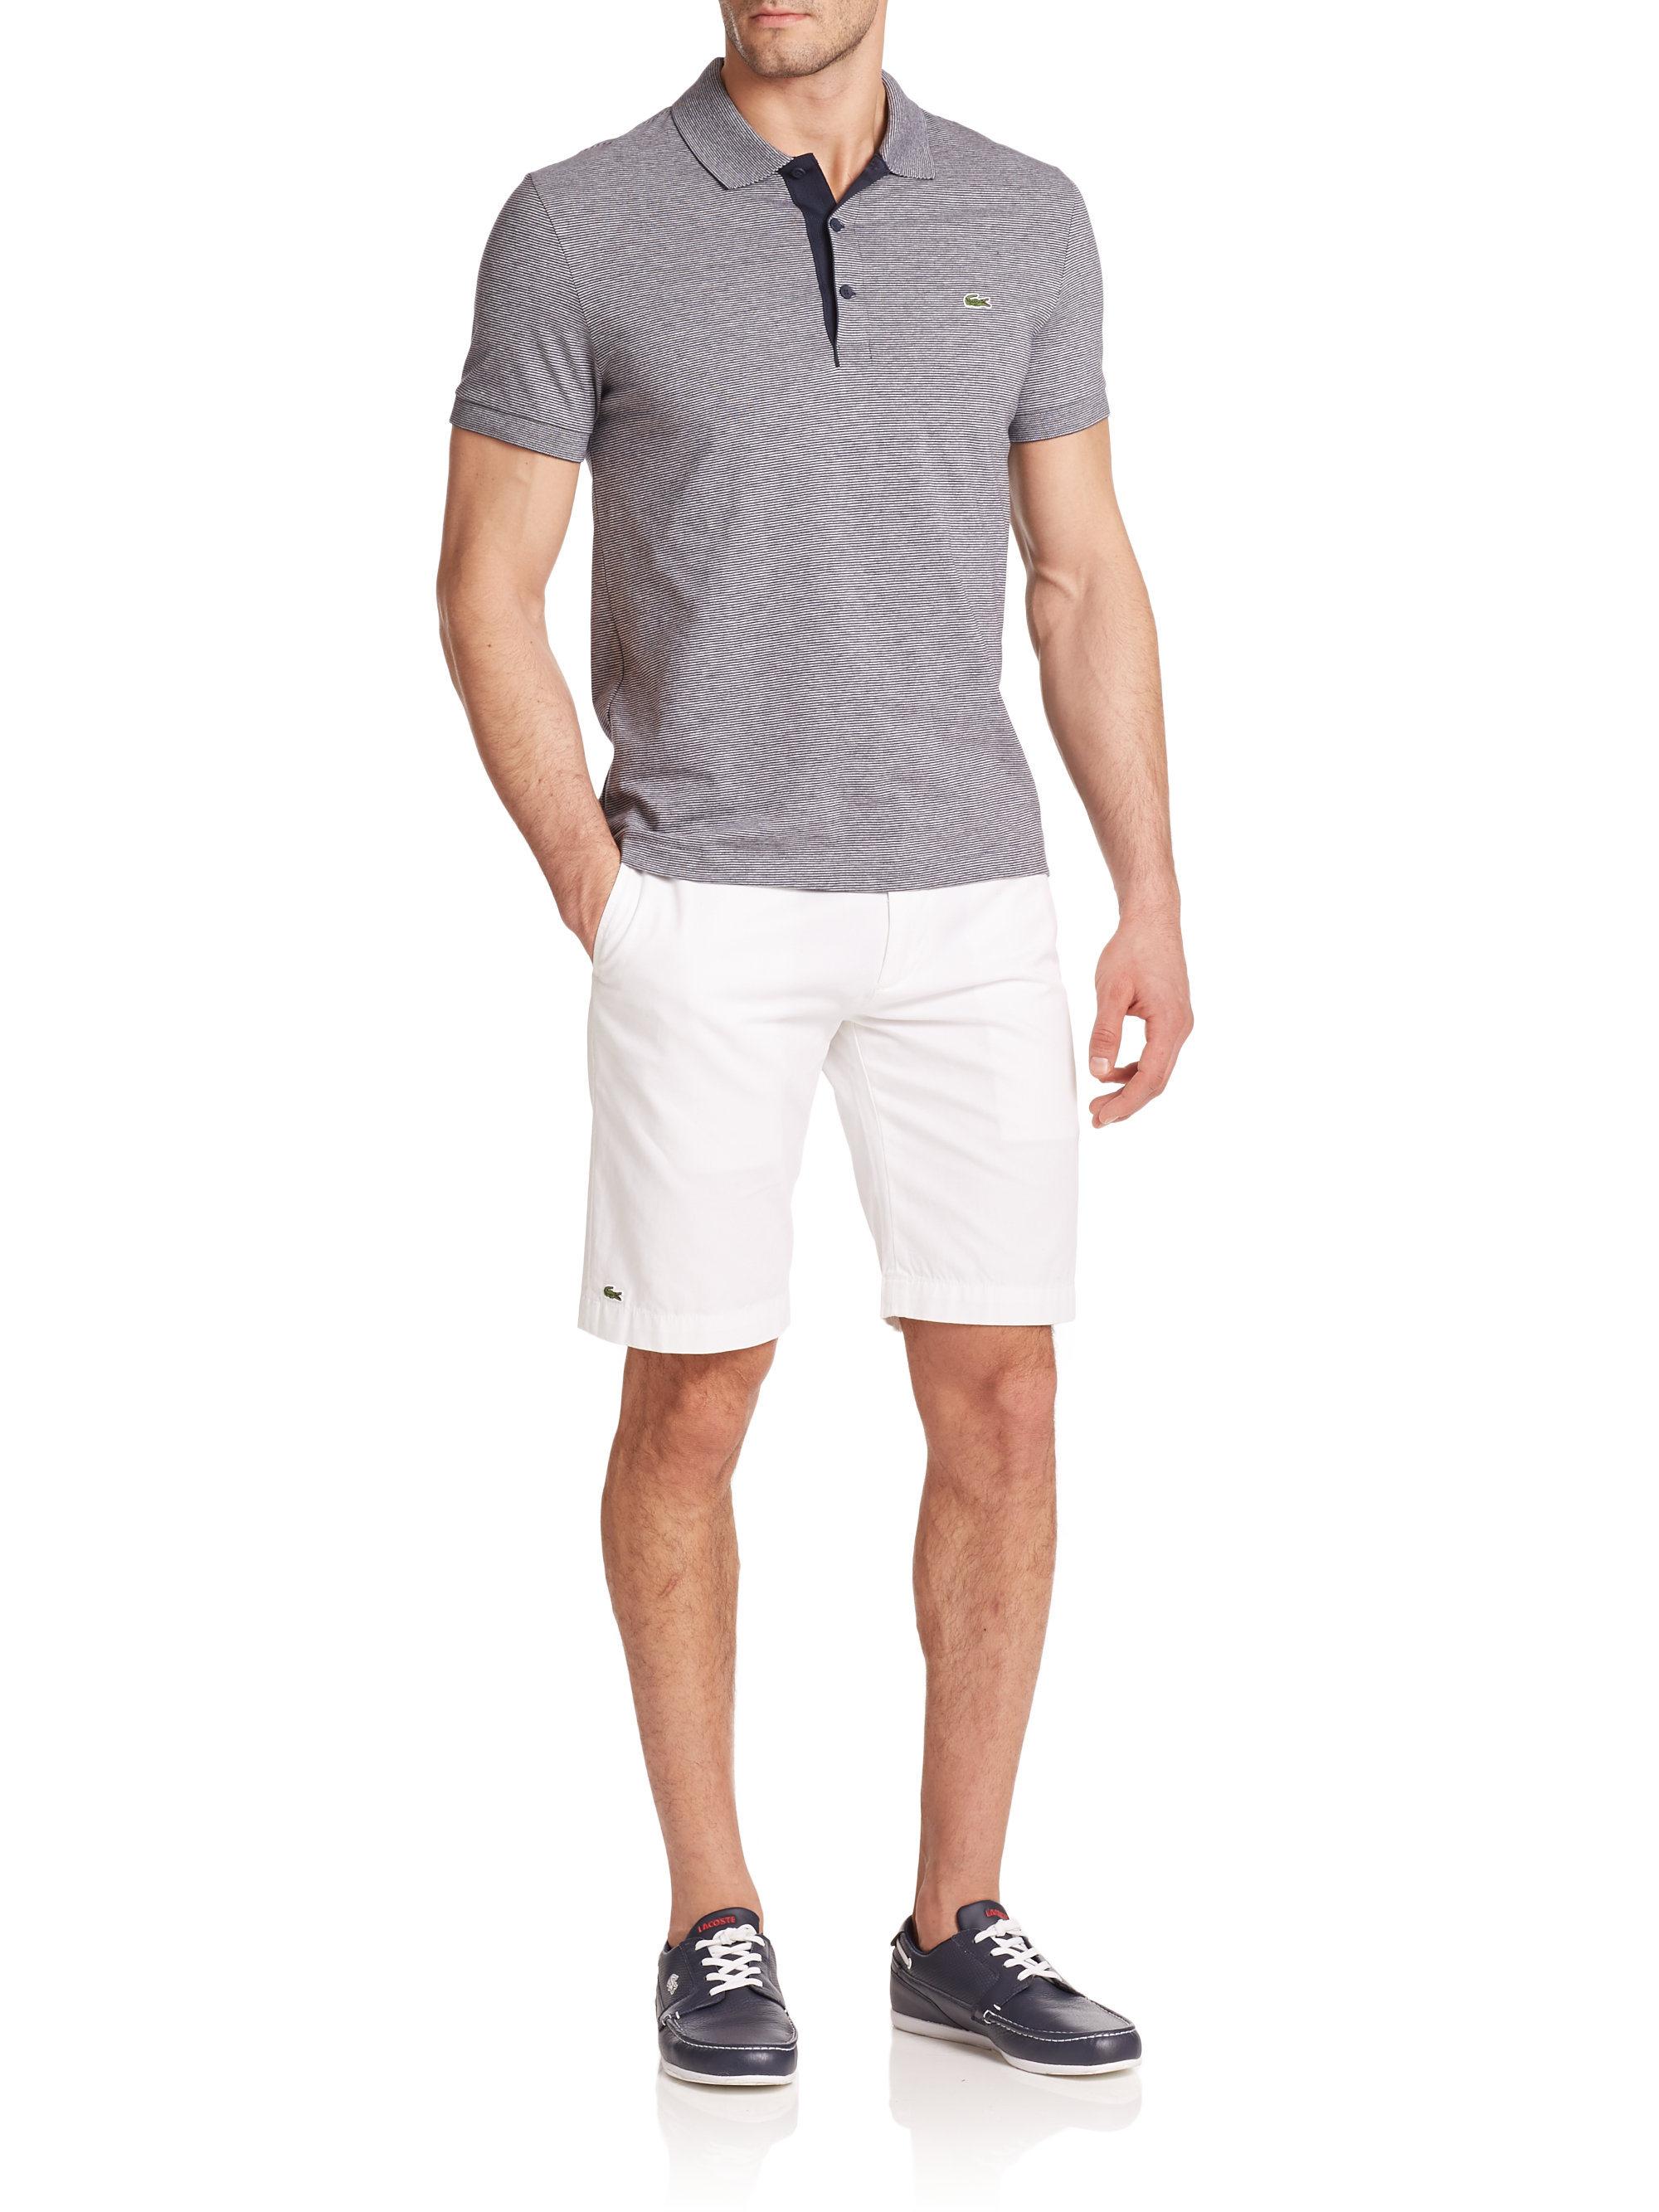 lacoste striped cotton polo shirt in gray for men lyst. Black Bedroom Furniture Sets. Home Design Ideas